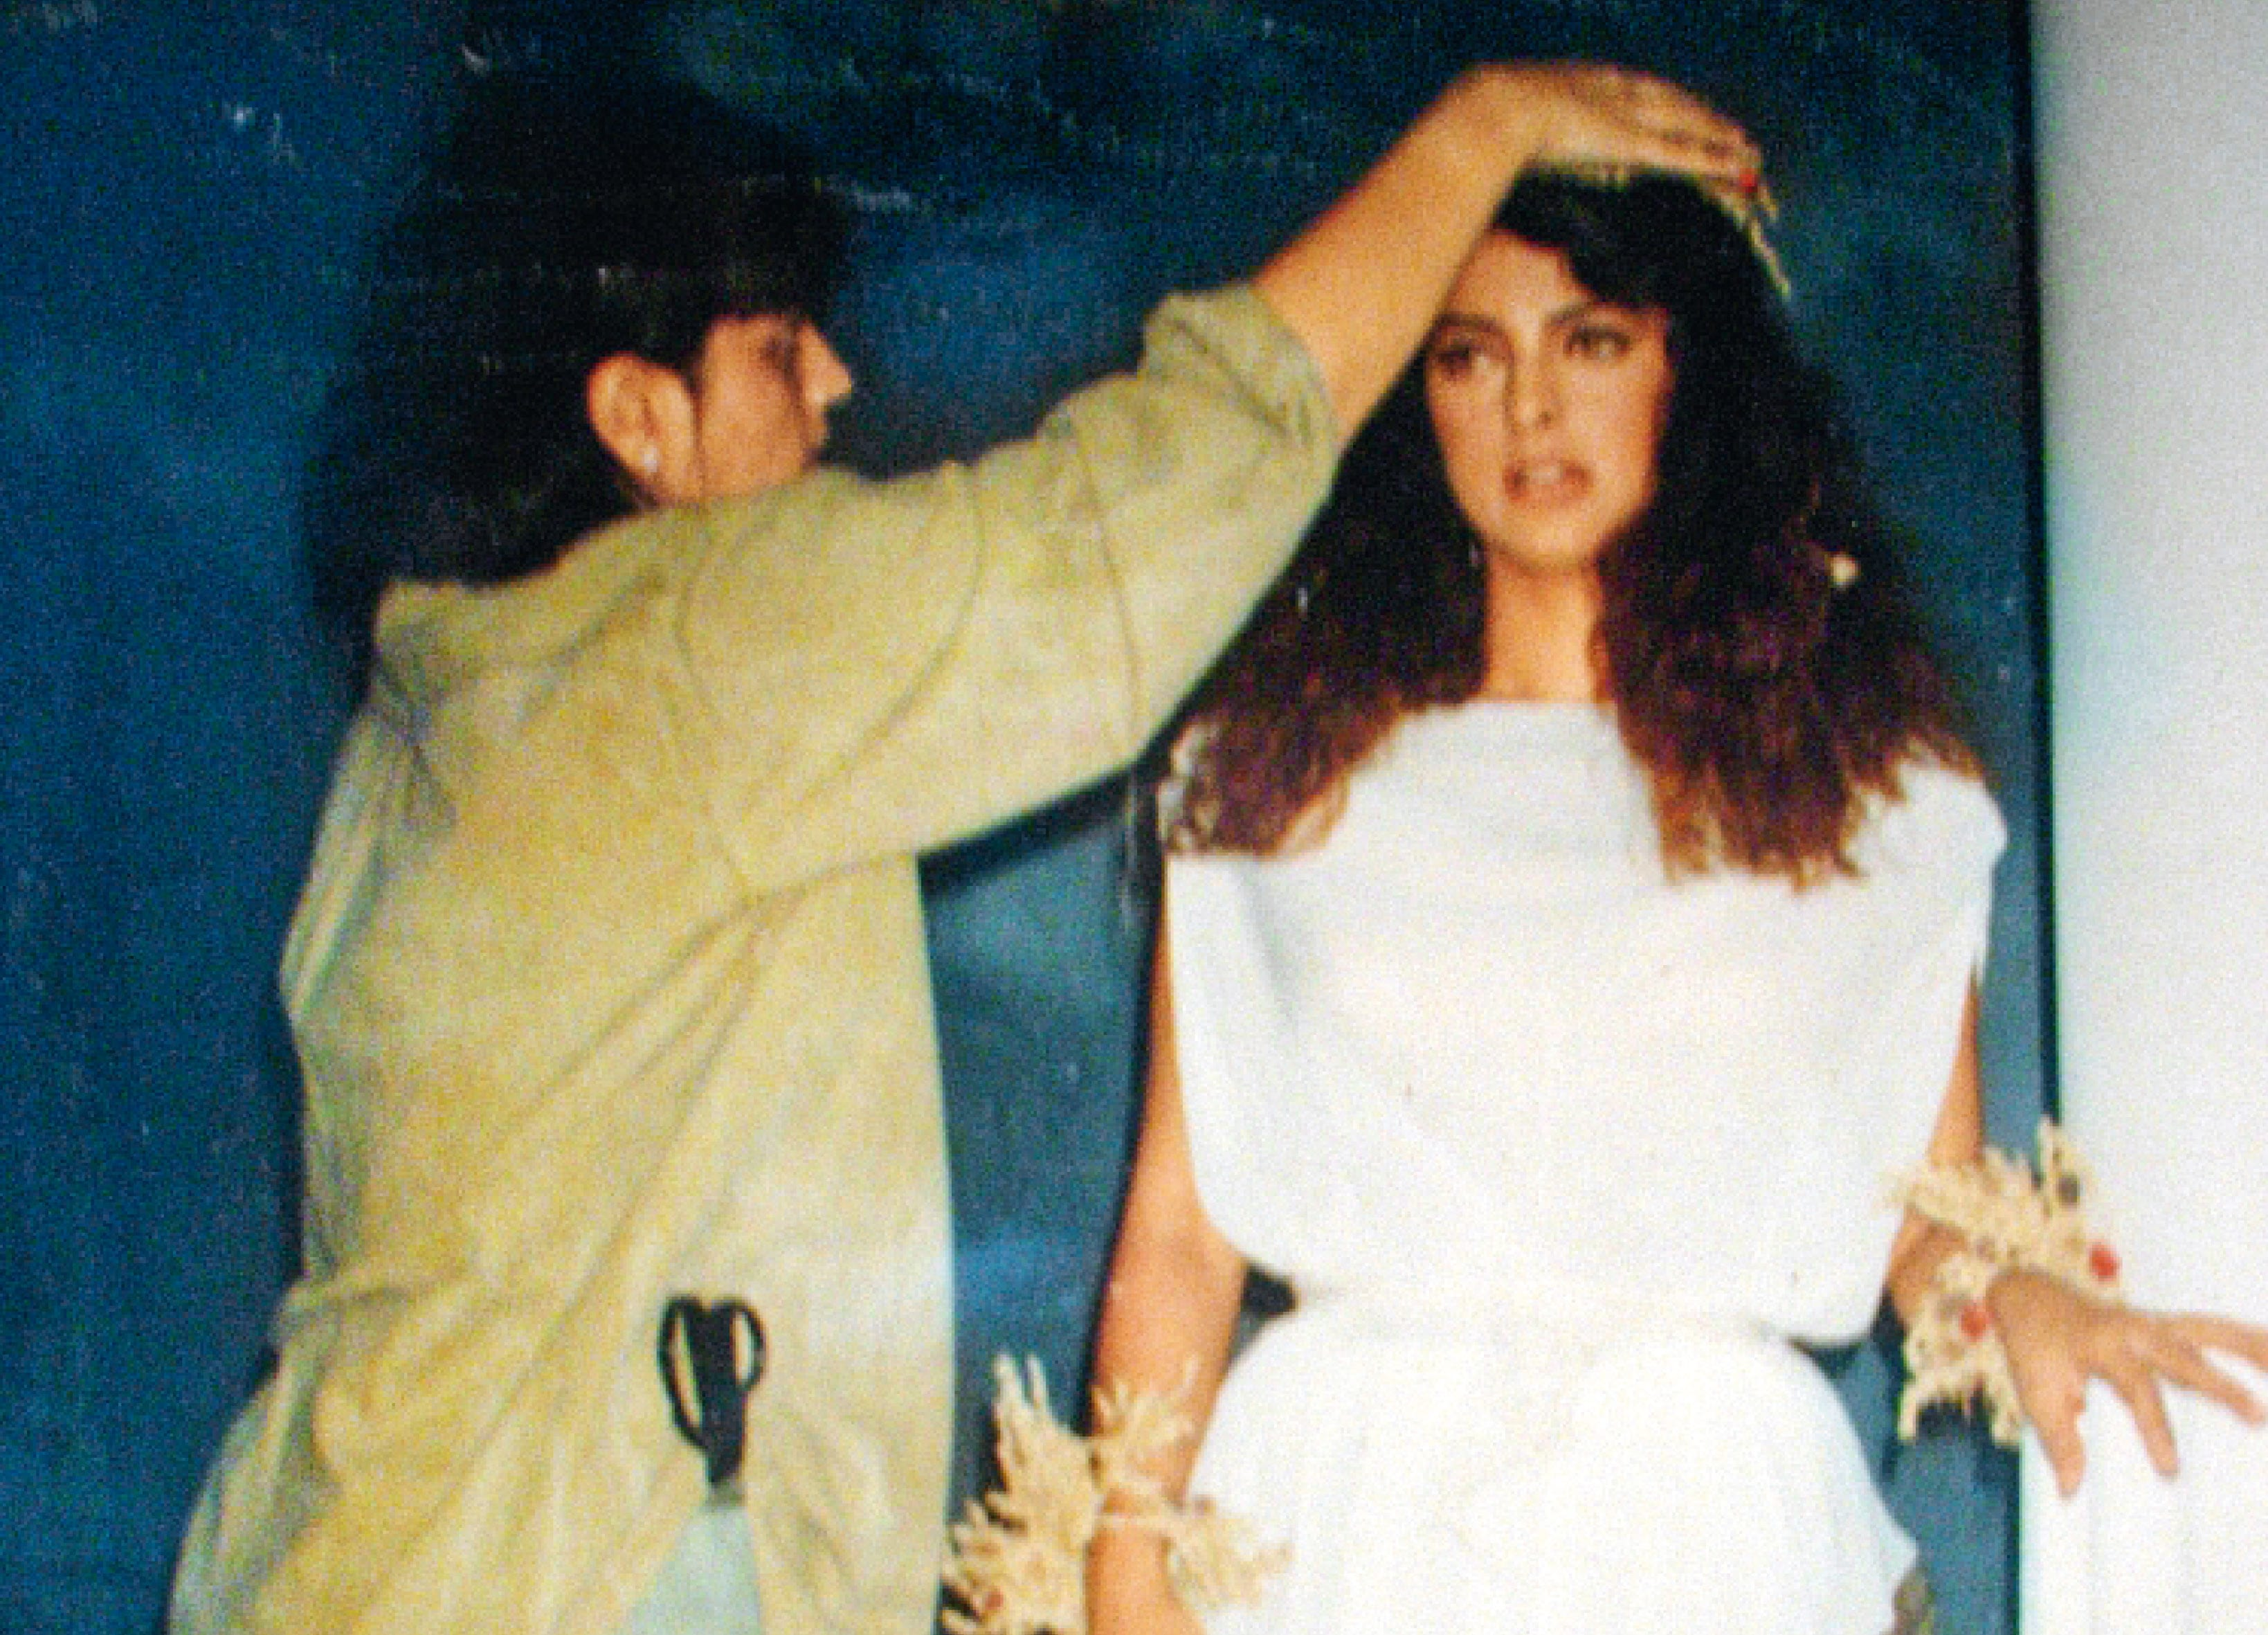 Give Juhi a Last Minute Touch for a Movie Magazine Photoshoot